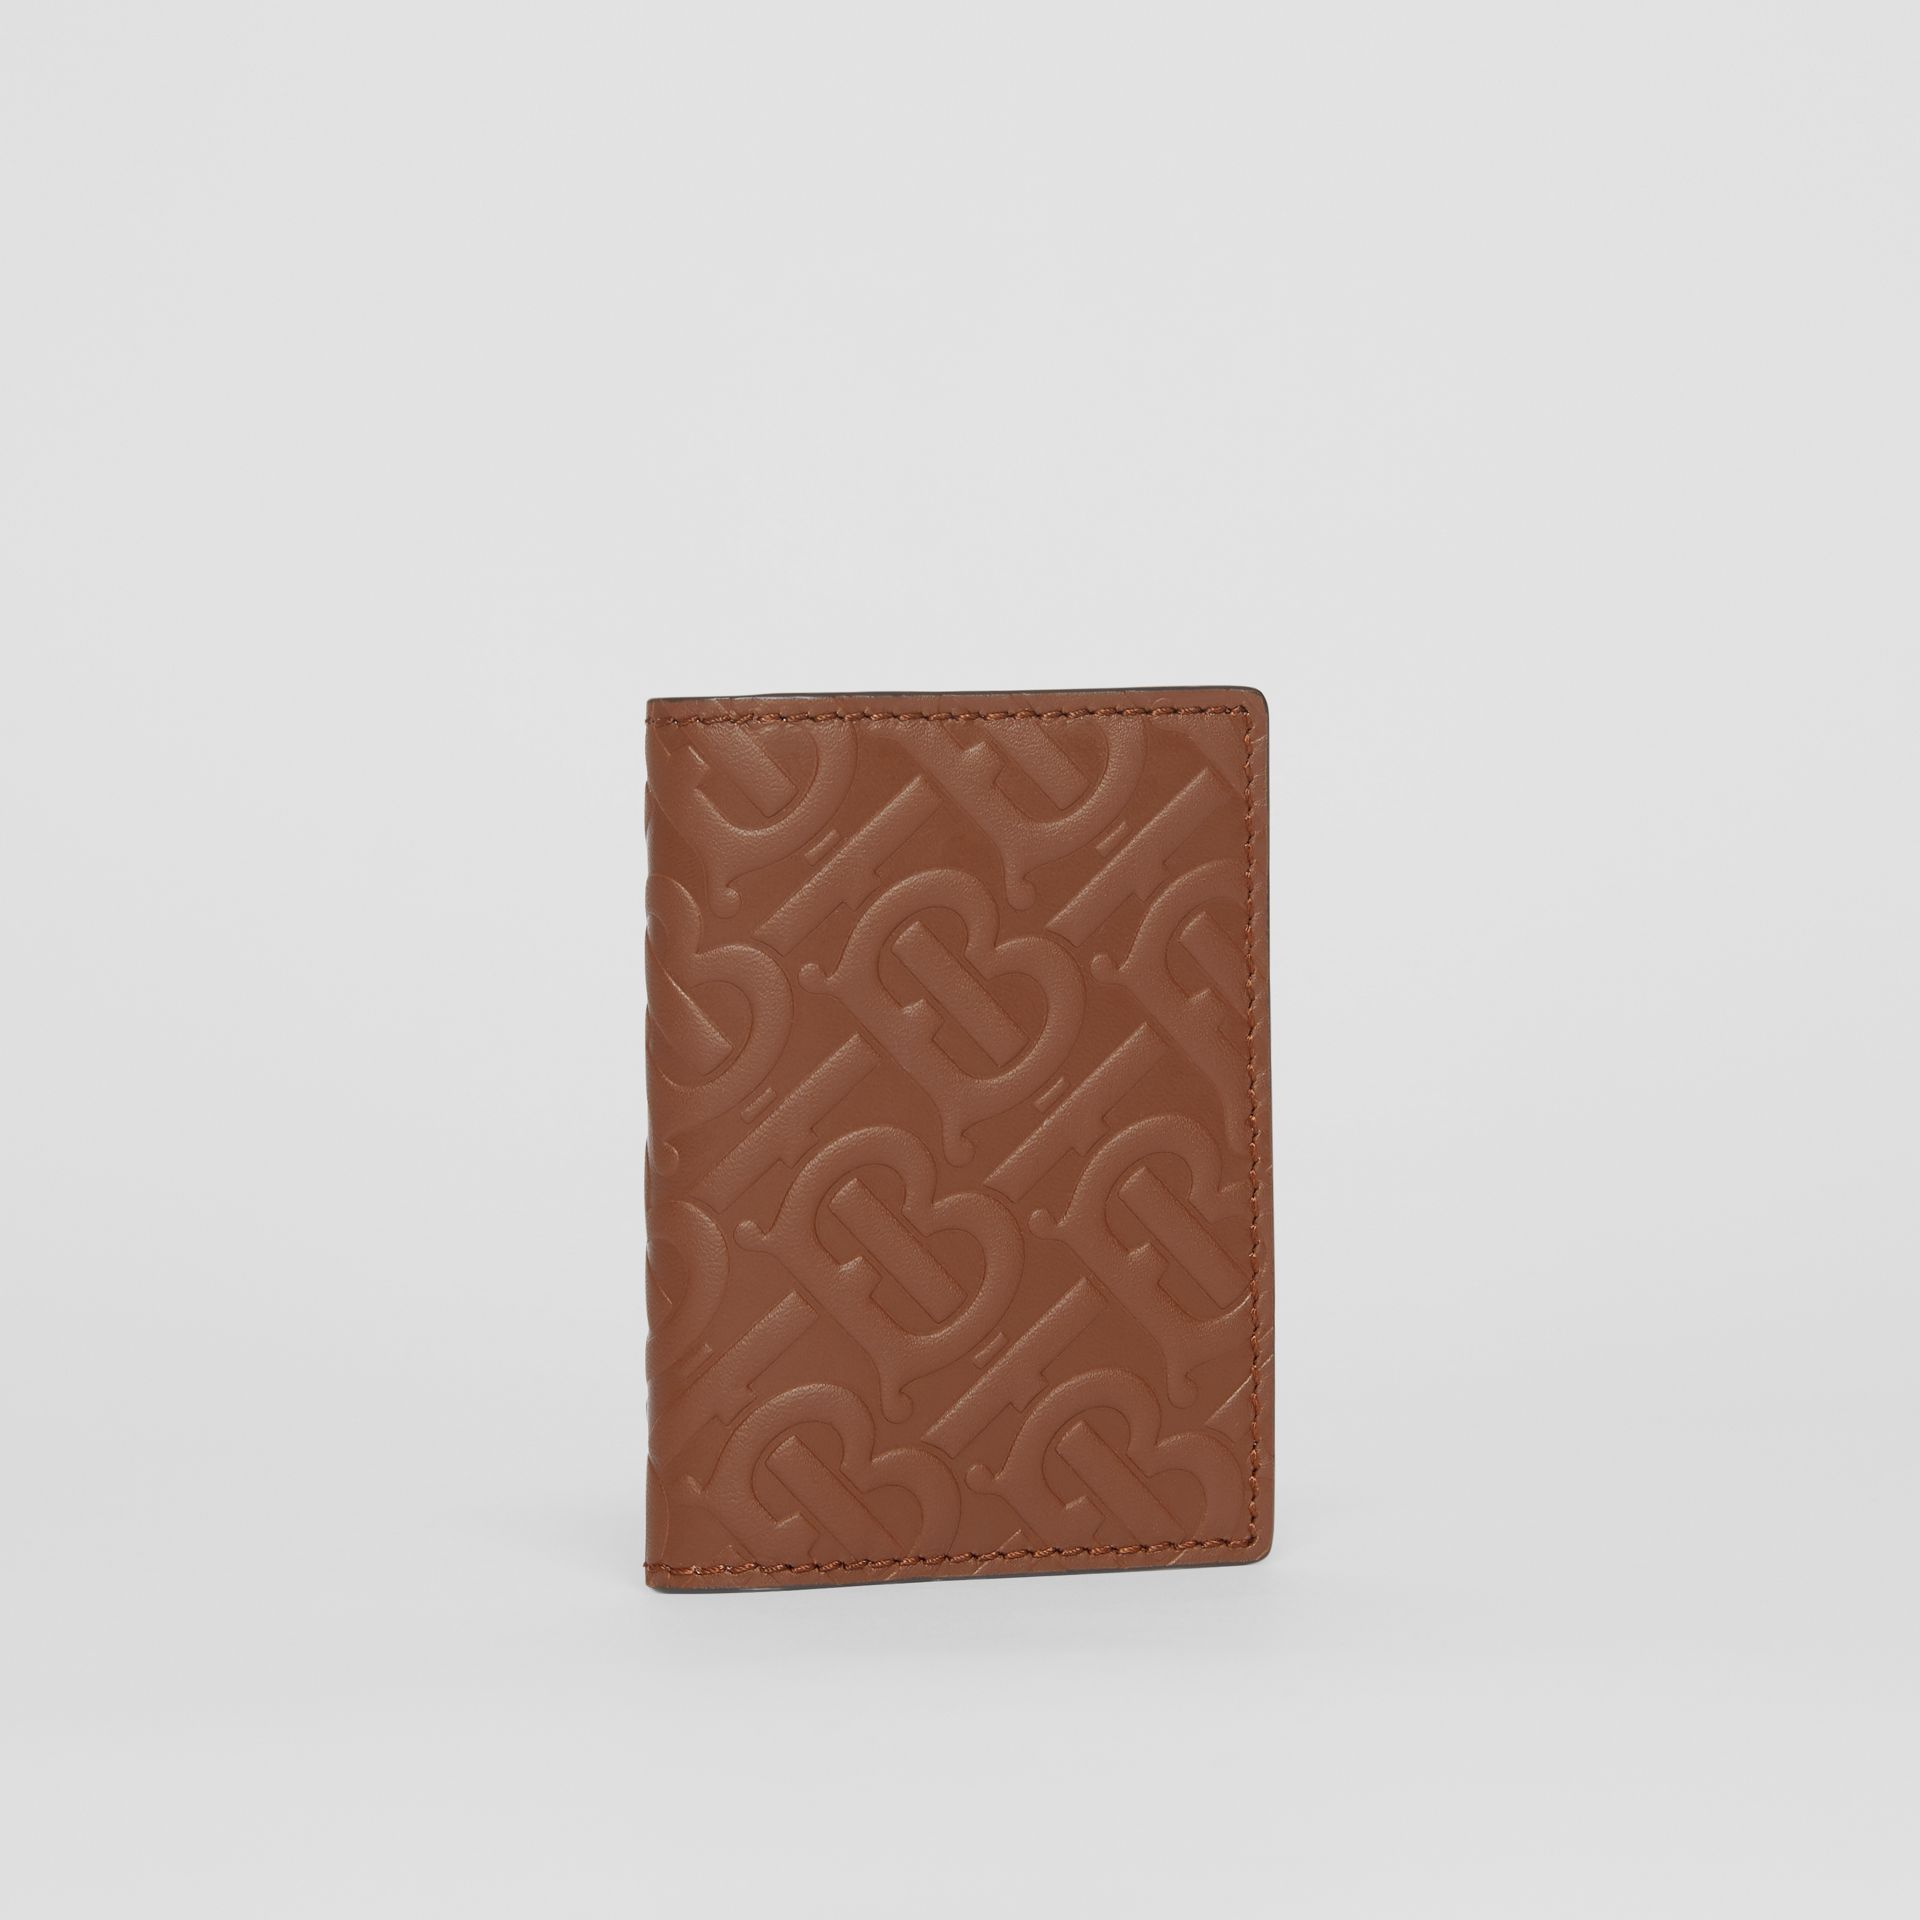 Monogram Leather Bifold Card Case in Dark Tan - Men | Burberry United Kingdom - gallery image 3